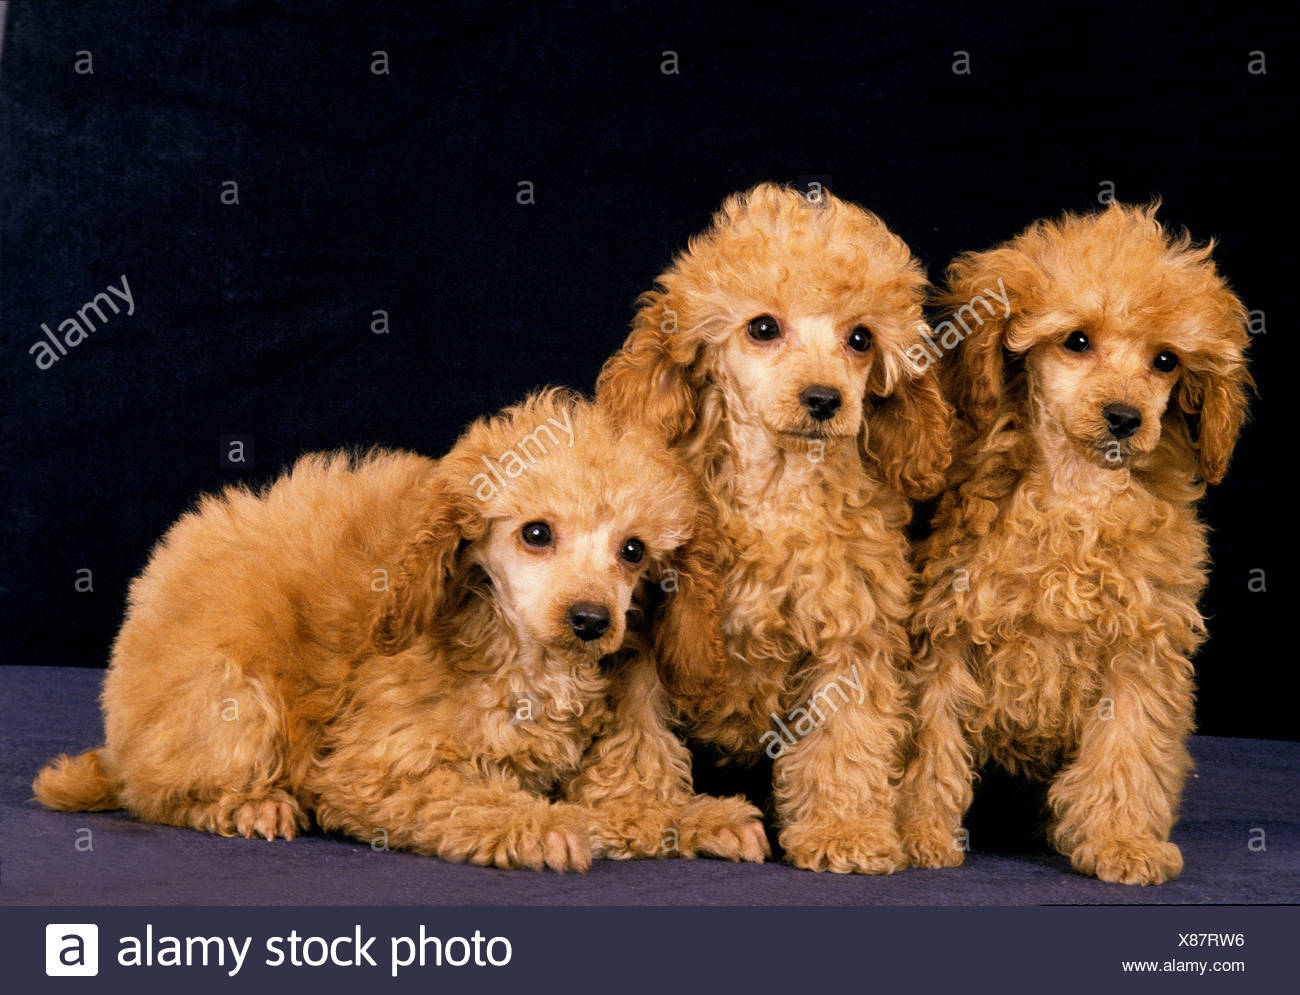 Apricot Miniature Poodle, Pups against Black Background - Stock Image